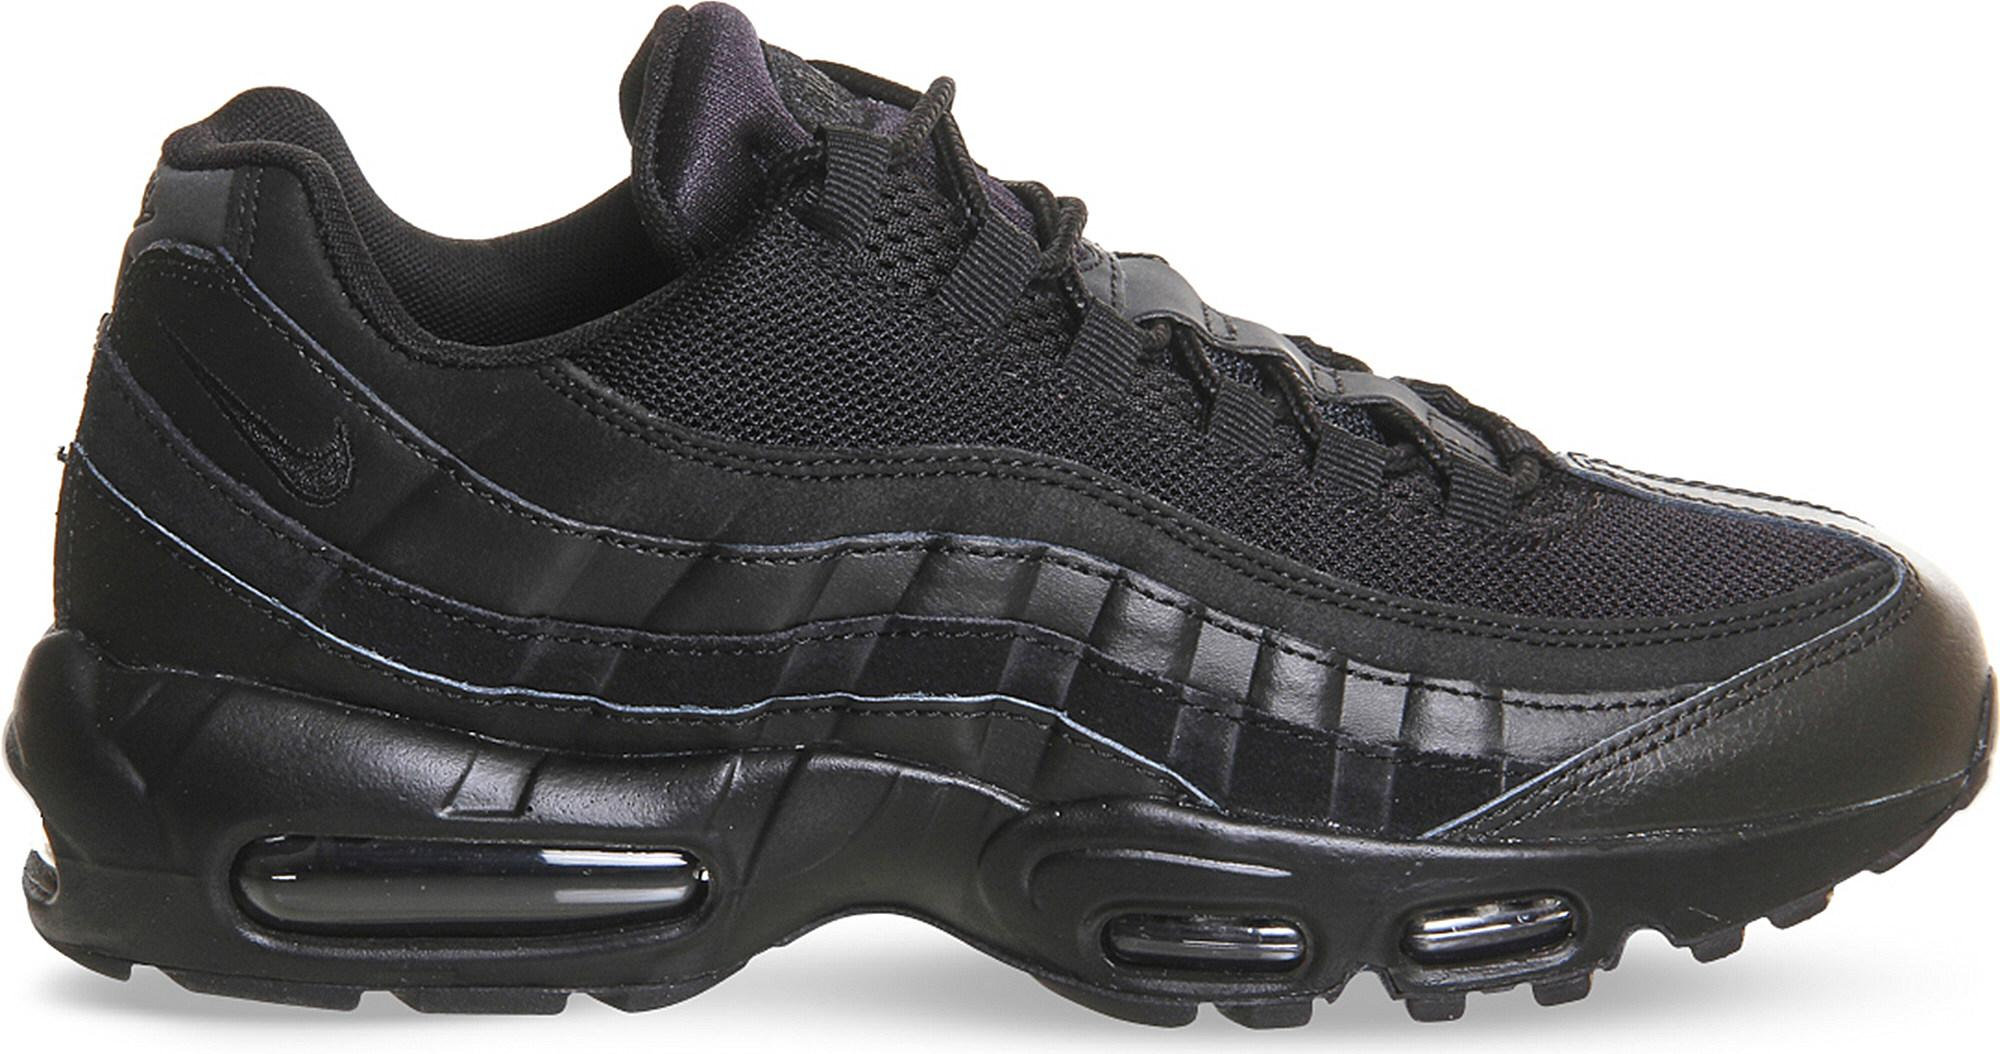 ... 3c71c 75360 Nike Air Max 95 Essential Mesh And Leather Trainers in  Black quite nice ... db6bb3751f